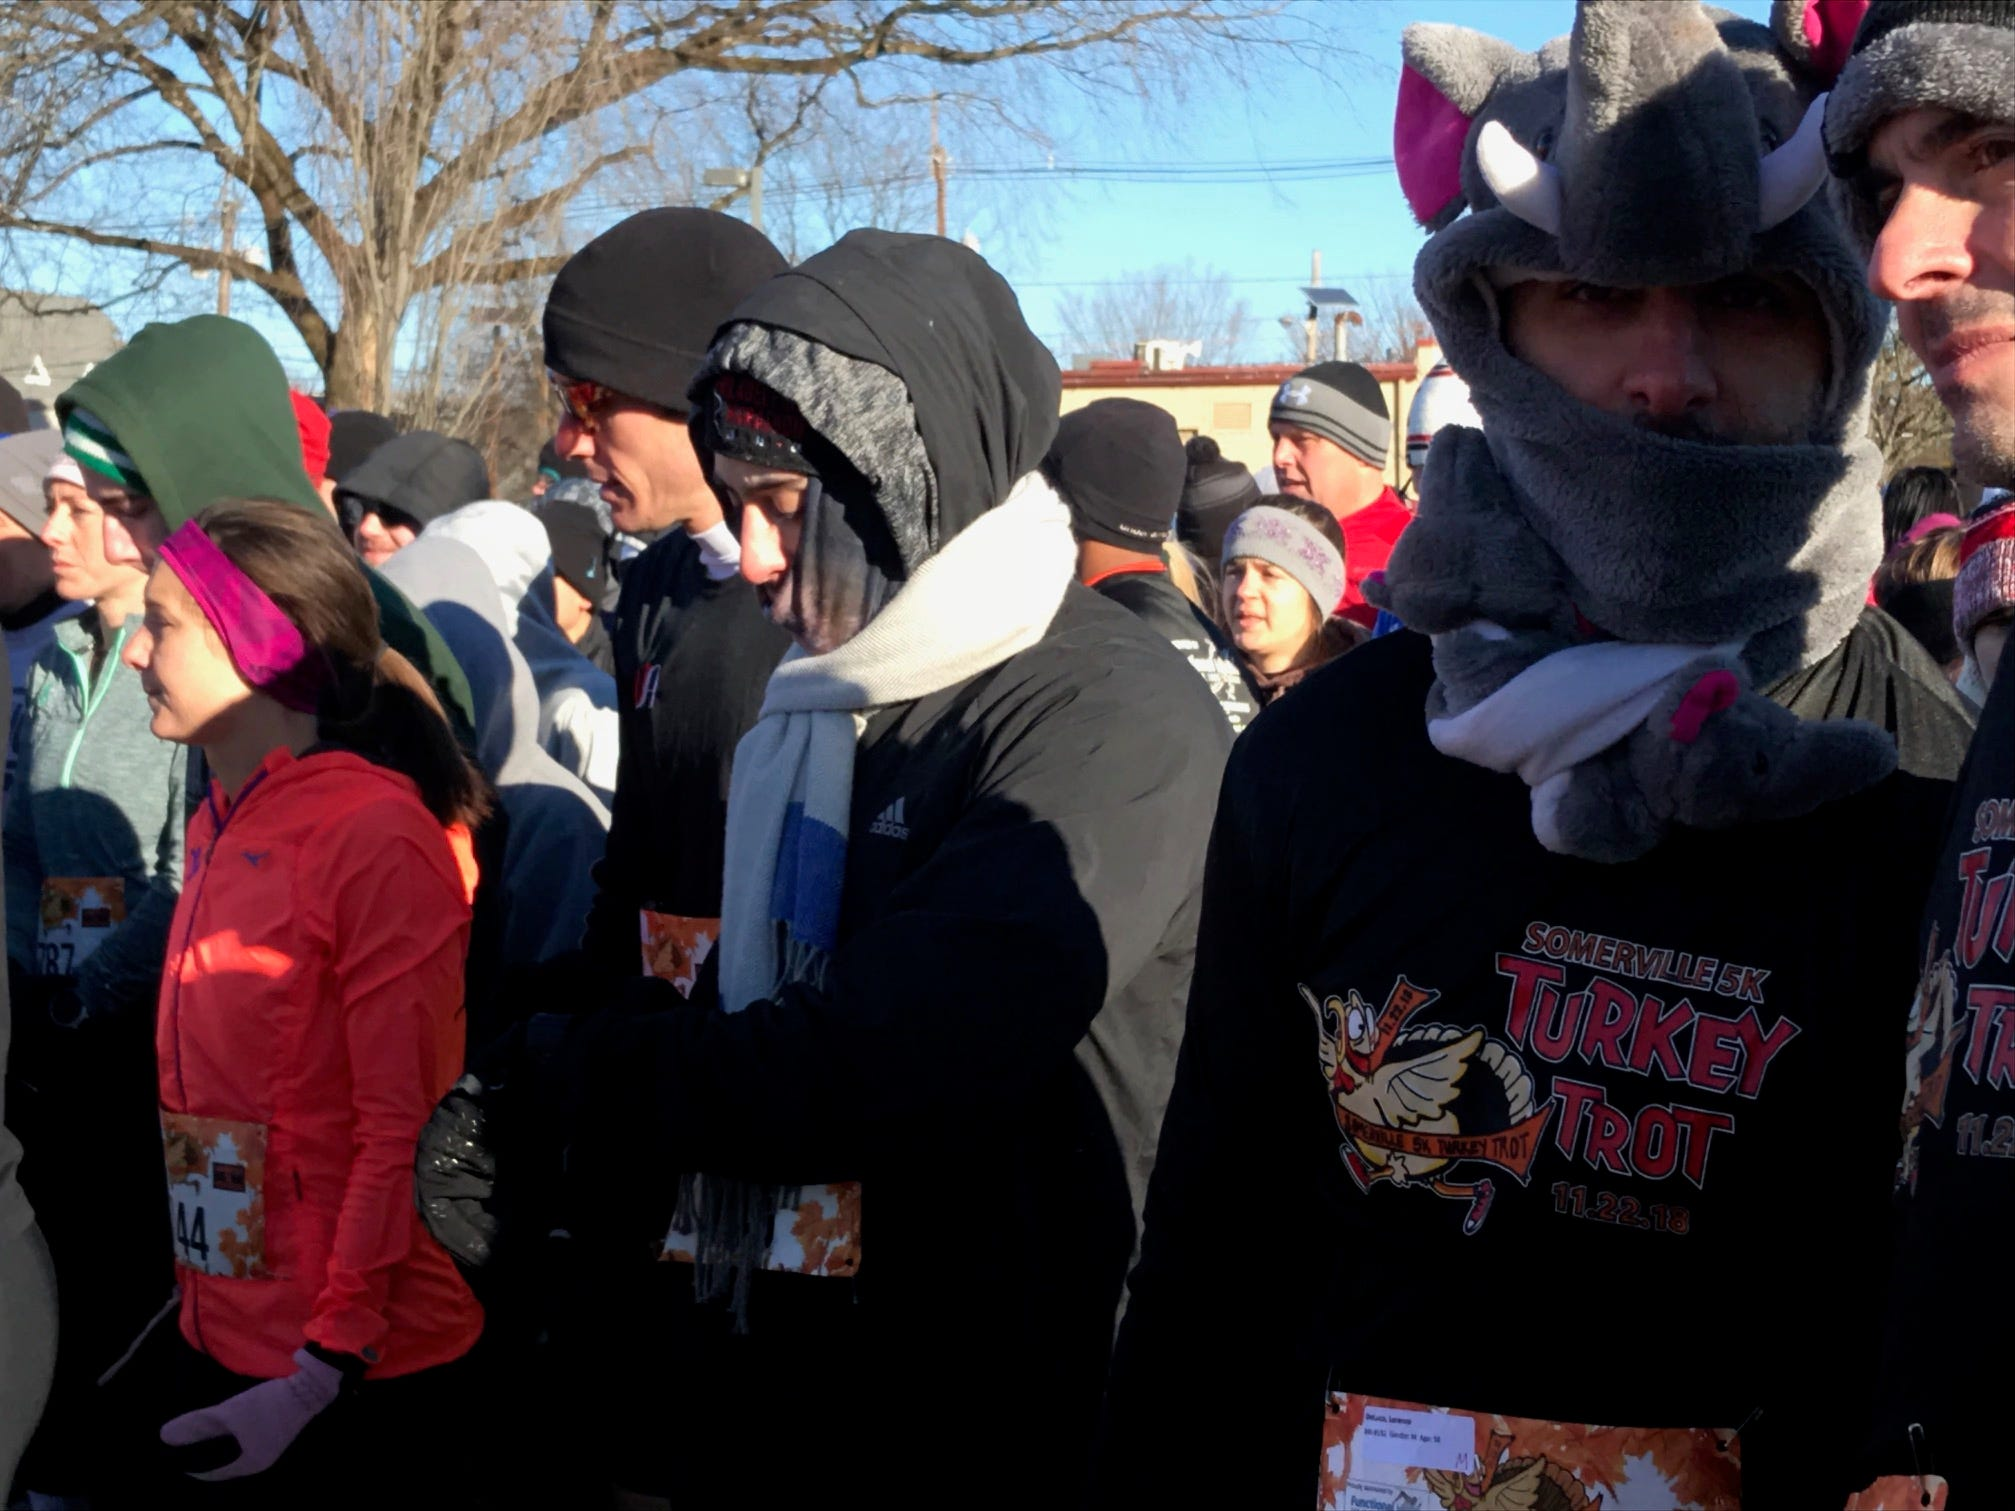 Runners are bundled up at the start of the Somerville Turkey Trot on Thanksgiving Day.